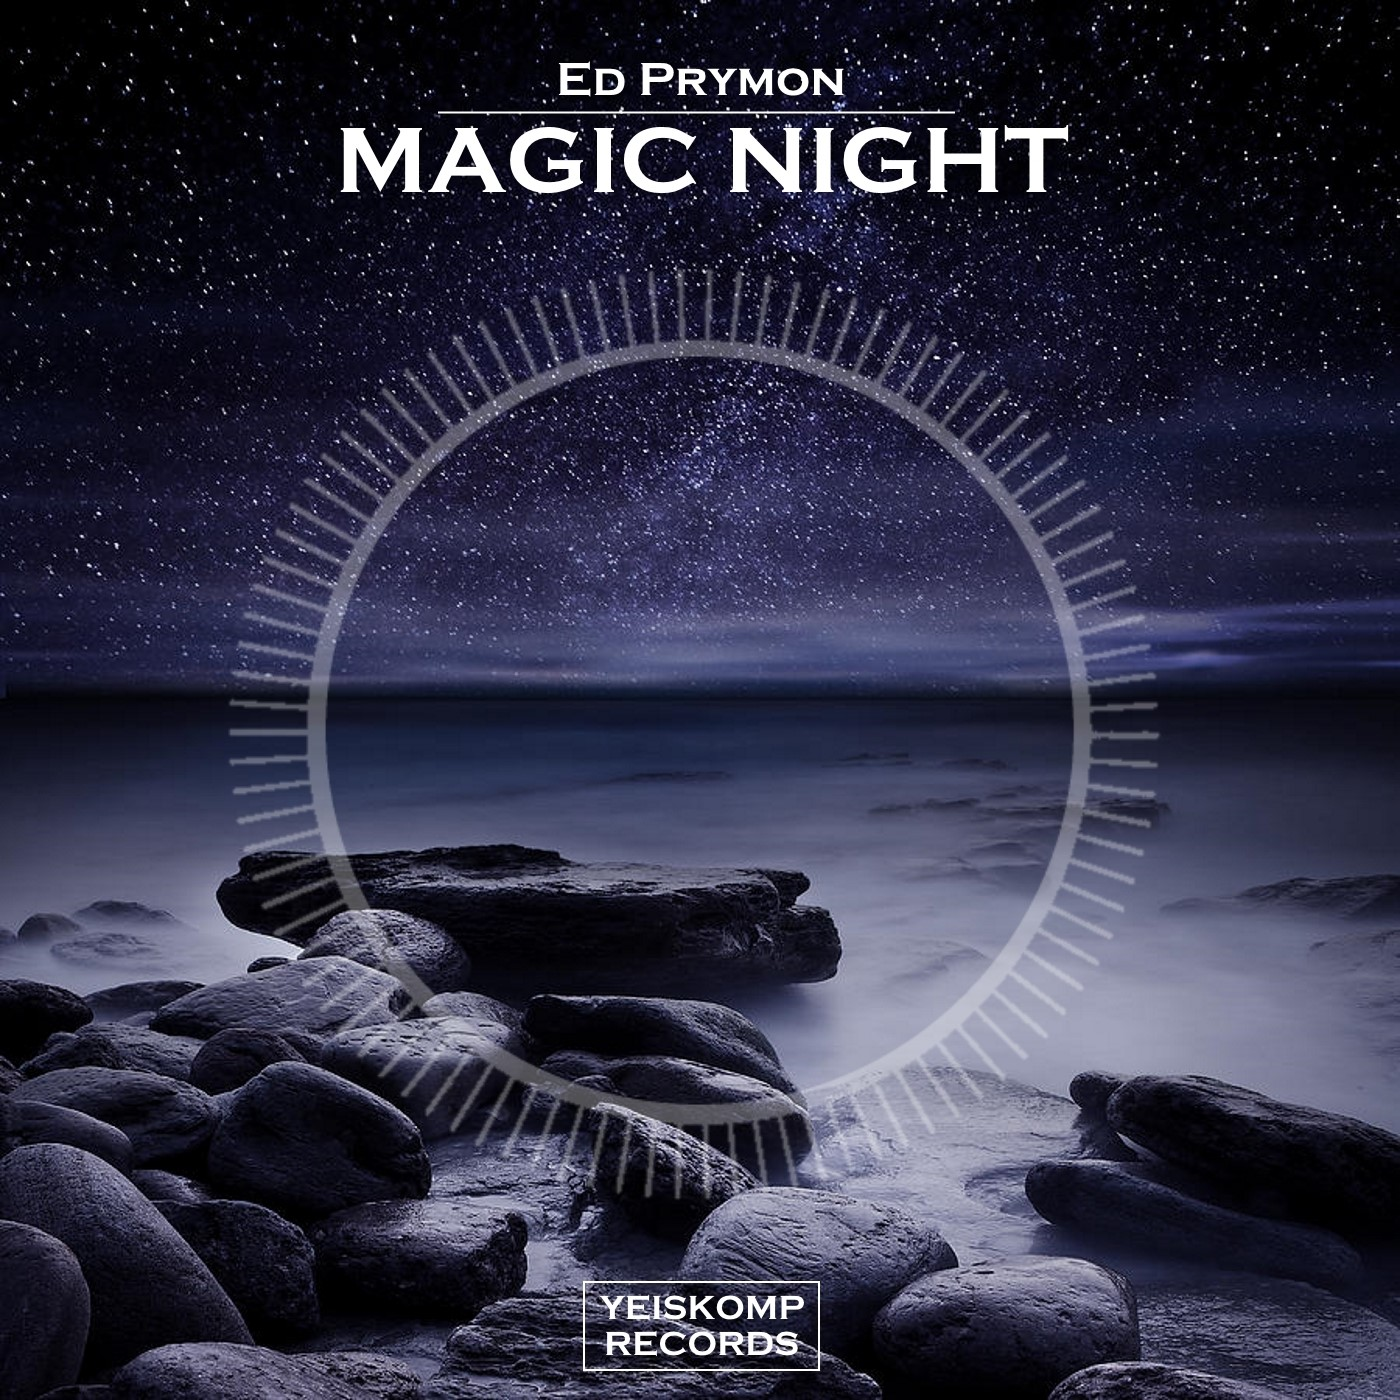 Ed Prymon - Magic Night (Original Mix)